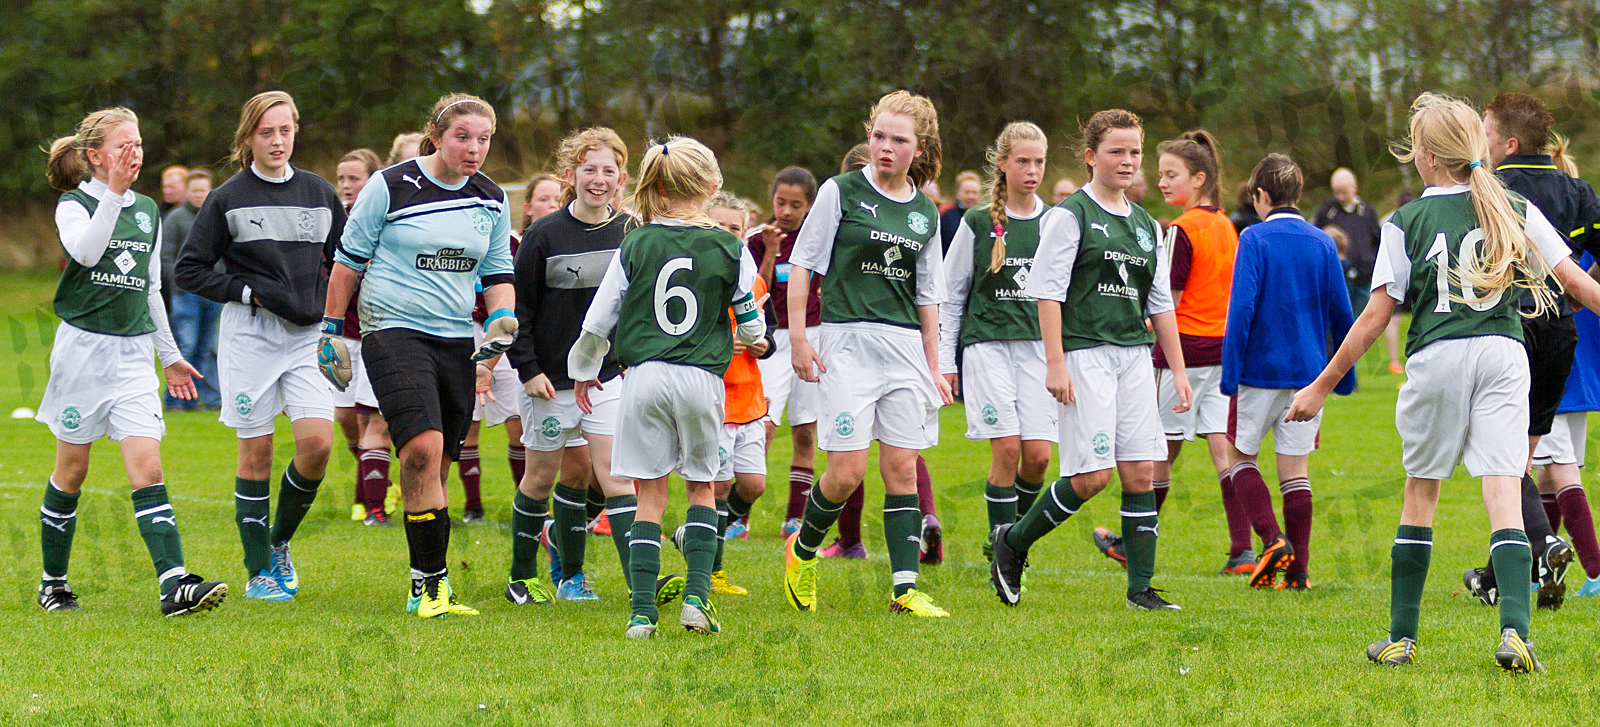 Hibs_v_Hearts_girls_13s-28.jpg